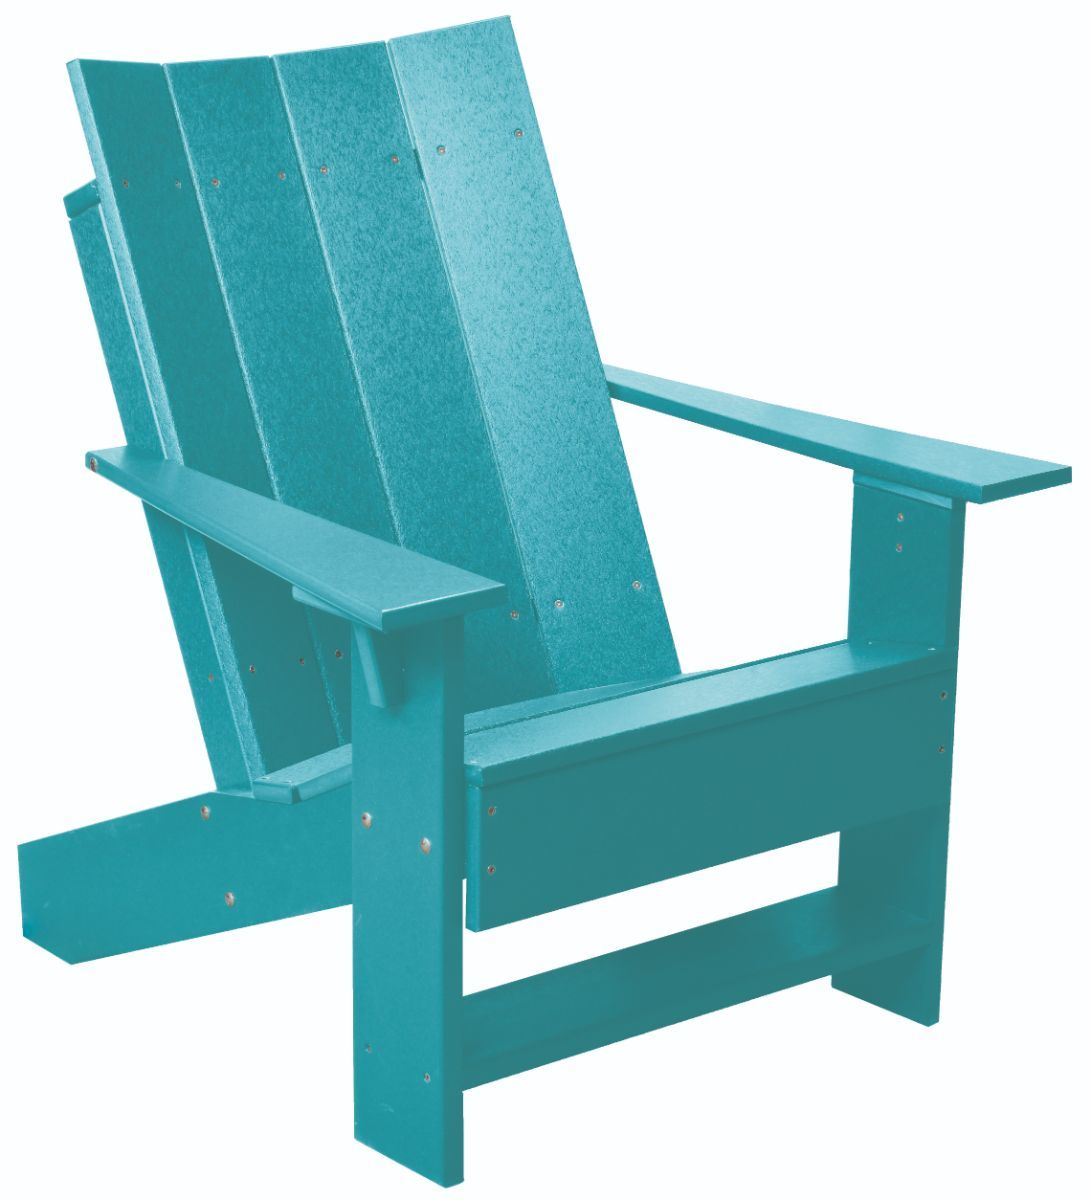 Aruba Blue Mindelo Adirondack Chair